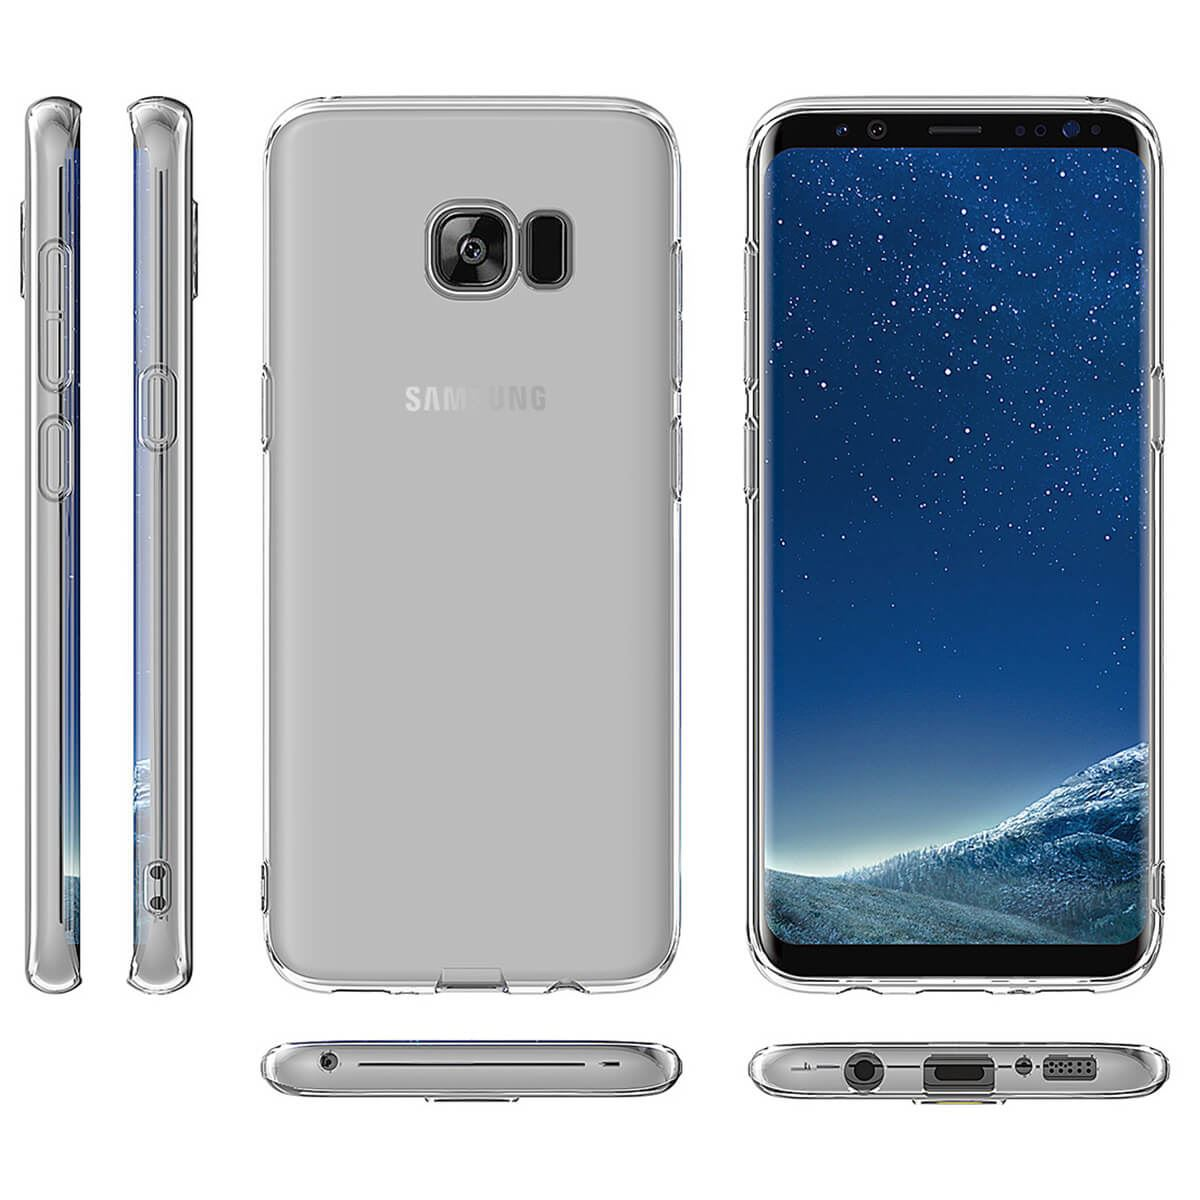 Shockproof-Silicone-Protective-Case-For-Samsung-Galaxy-S7-S8-S9-Gel-Cover-Clear thumbnail 11